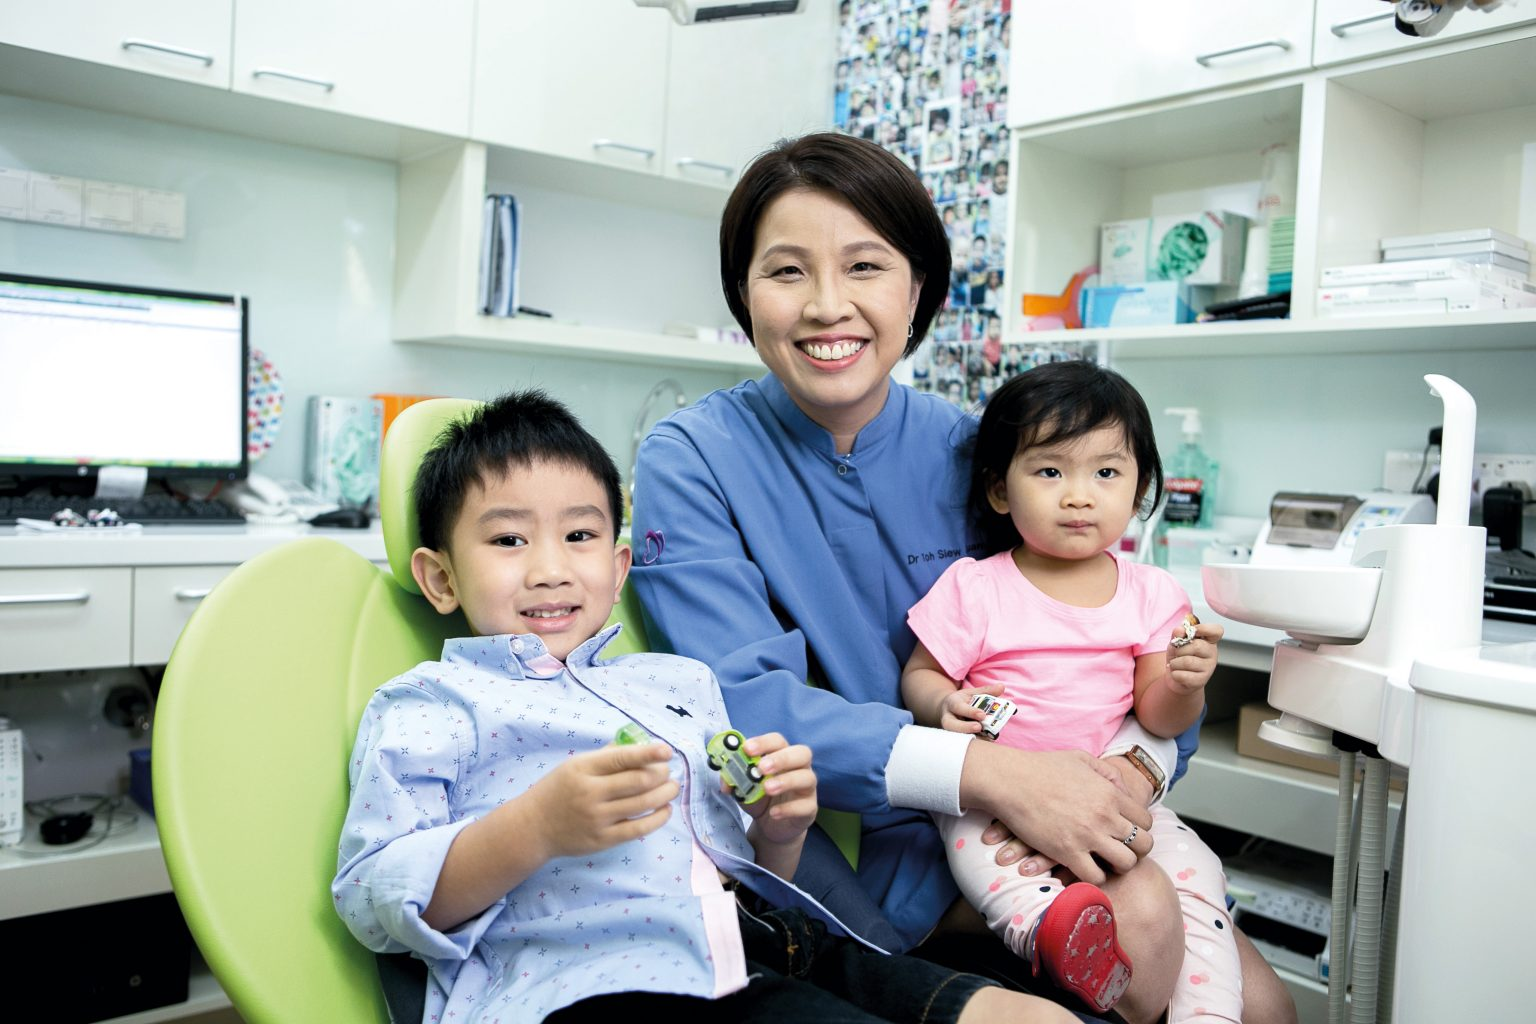 Thomson paediatric dentist Toh Siew Luan talks about dental care for little ones